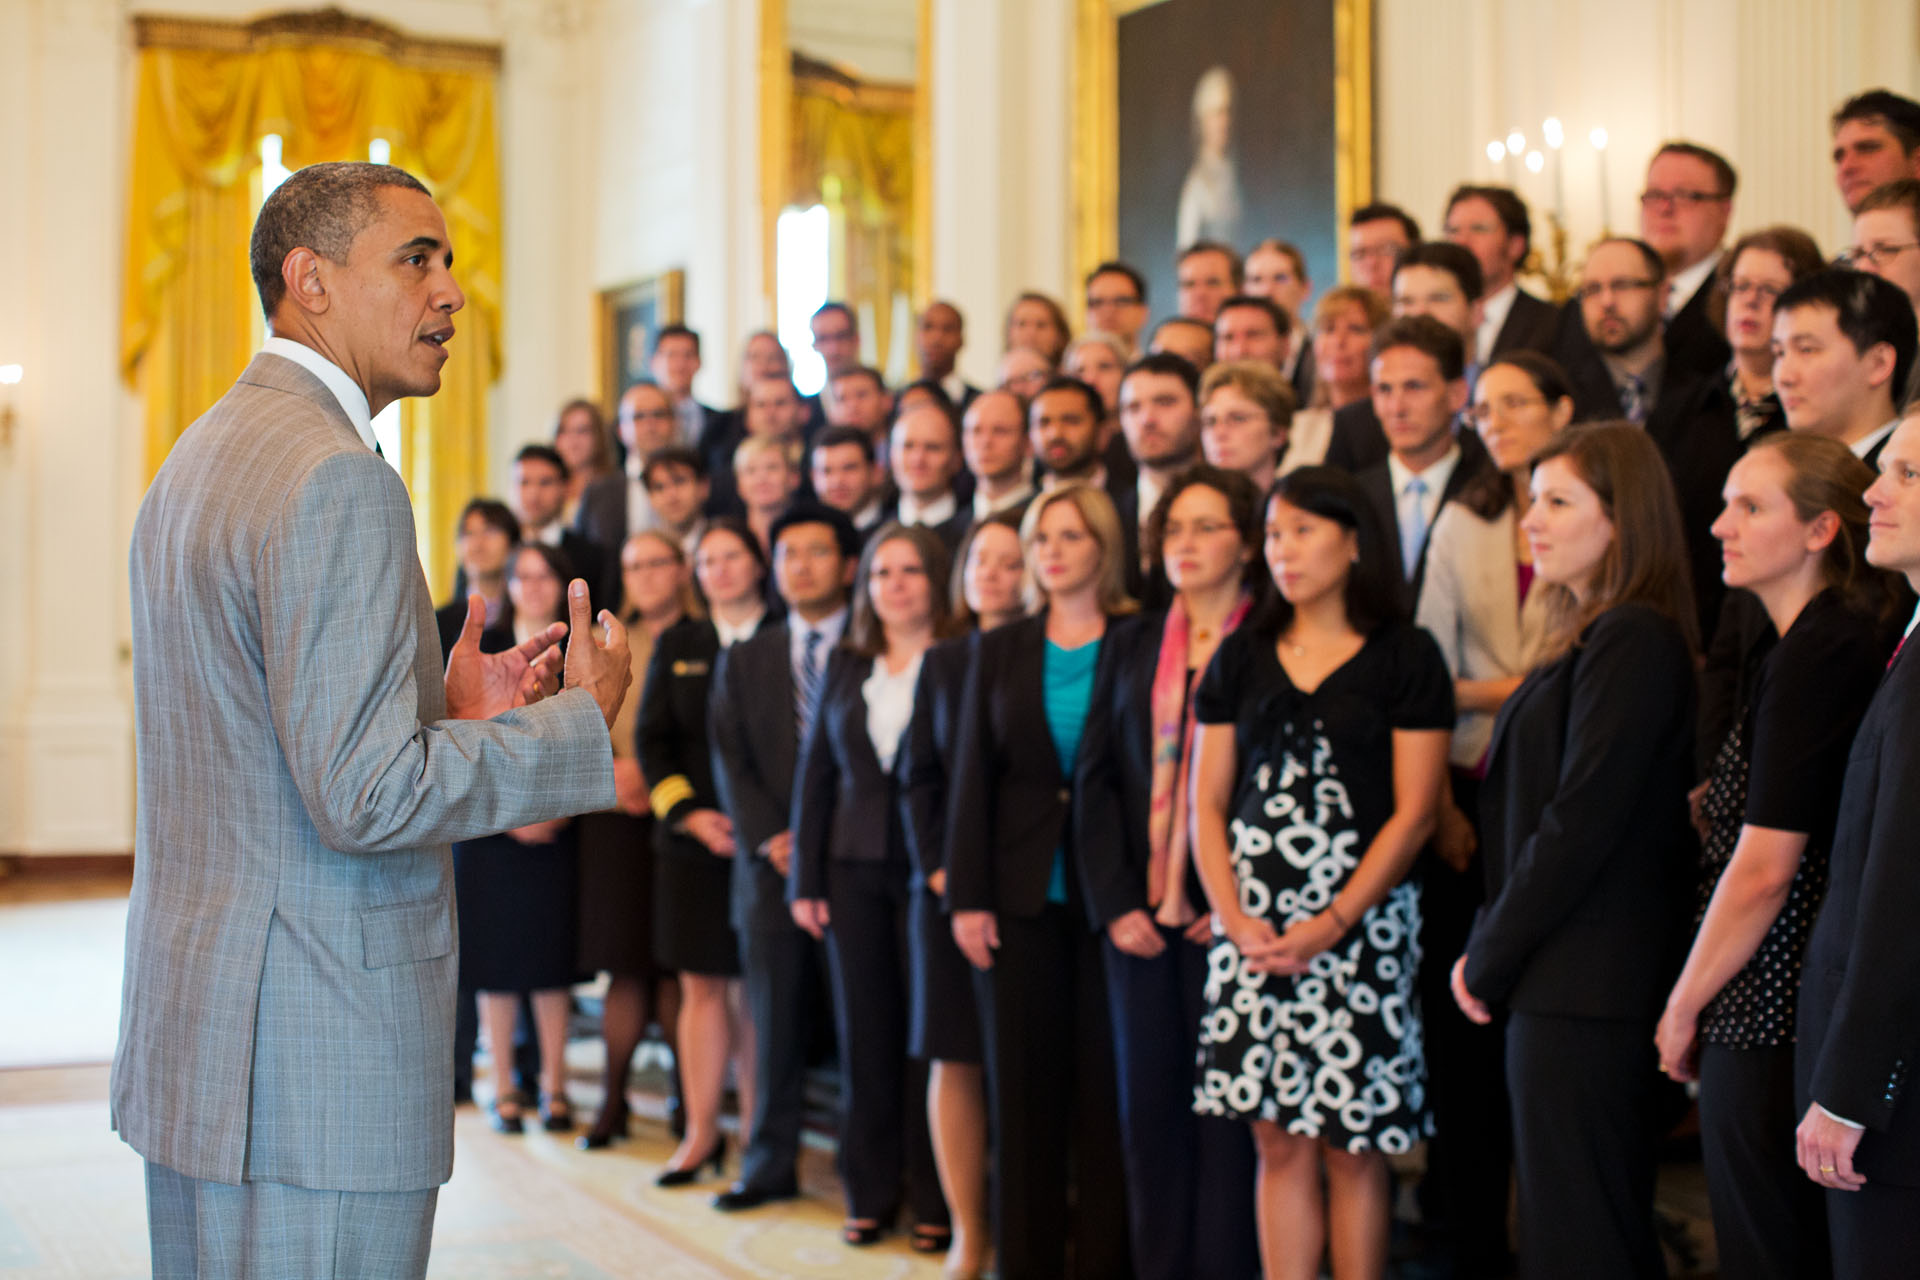 President Barack Obama addresses 2011 Presidential Early Career Awards for Scientists and Engineers (PECASE) recipients in the East Room of the White House, July 31, 2012. (Official White House Photo by Pete Souza)